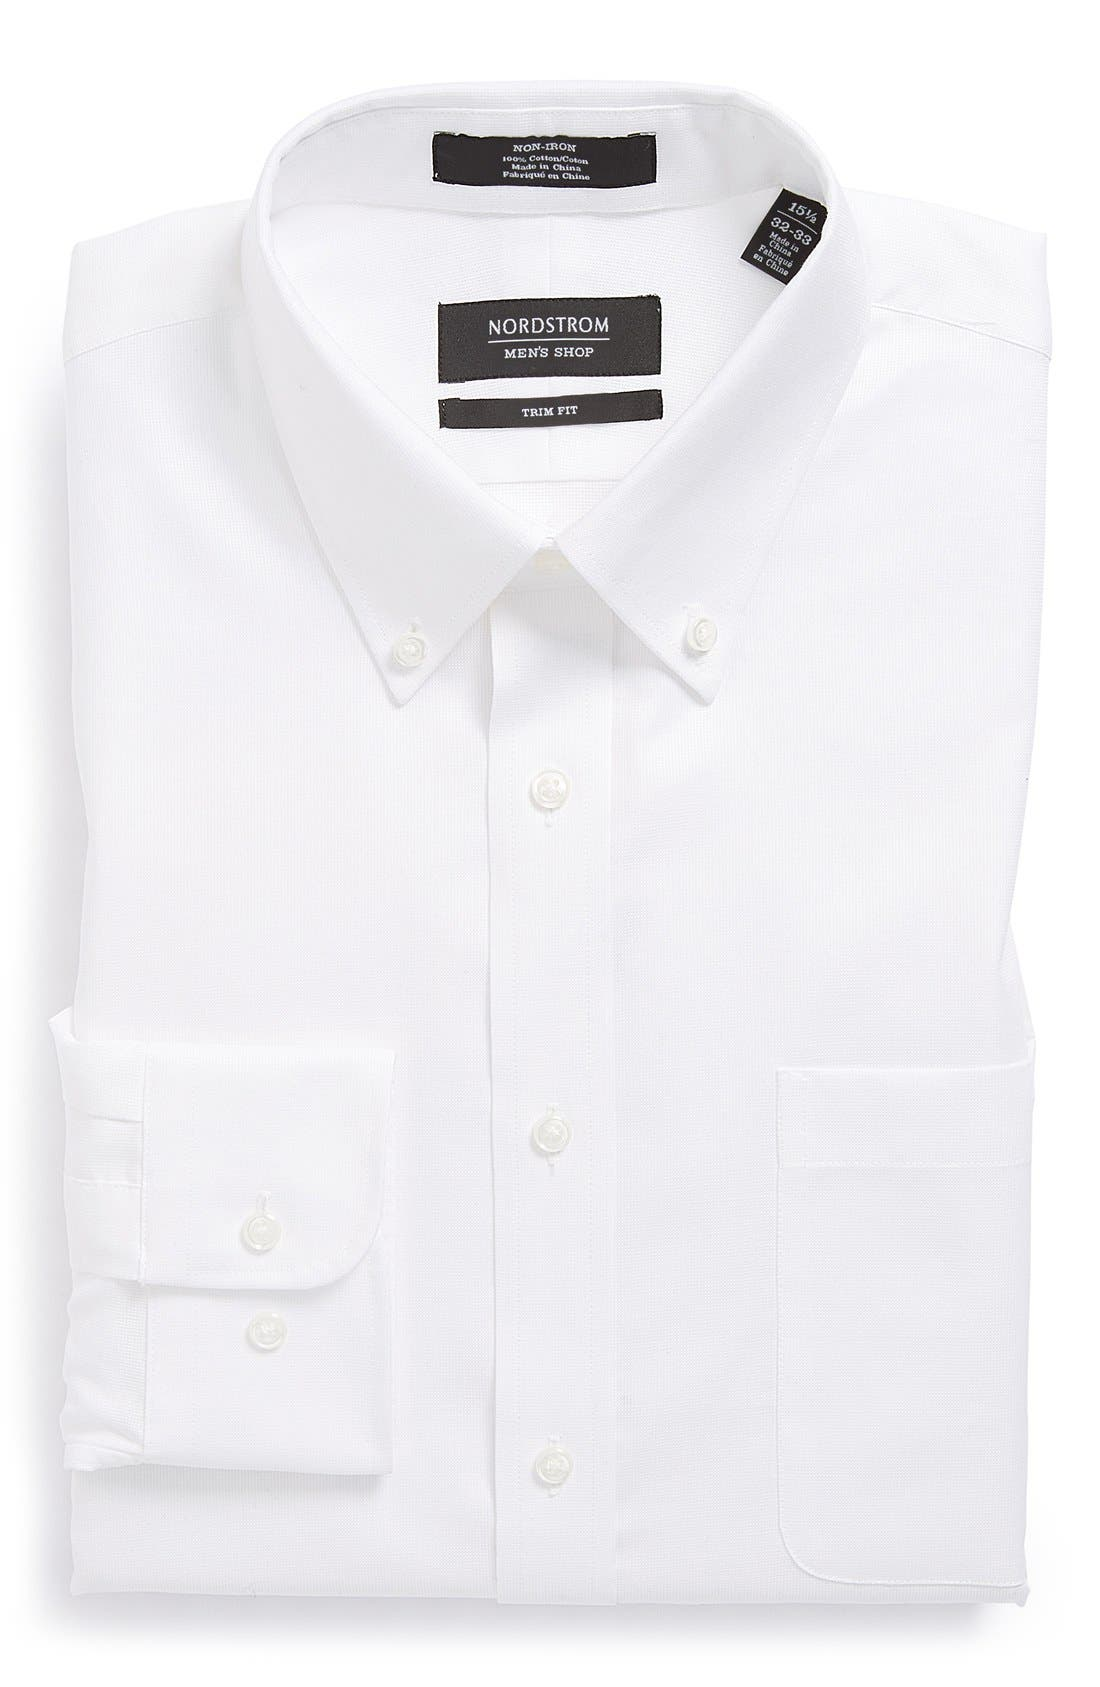 Nordstrom Trim Fit Non-Iron Dress Shirt,                         Main,                         color, White